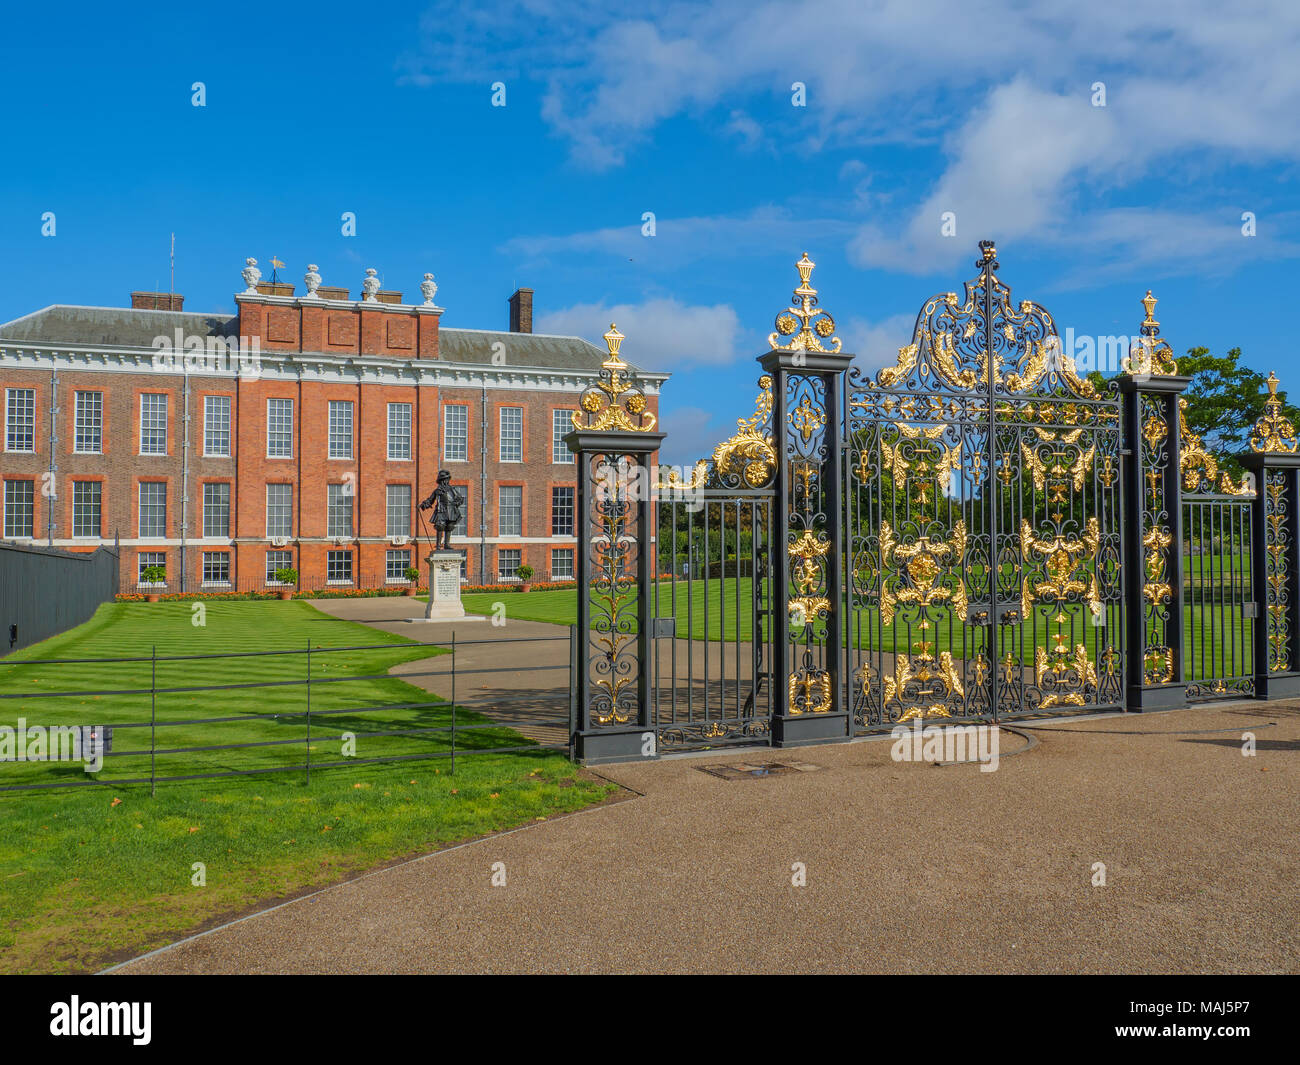 View of Kensington Palace, a royal residence situated in Kensington Gardens with a statue of King William III in London on a sunny day. - Stock Image